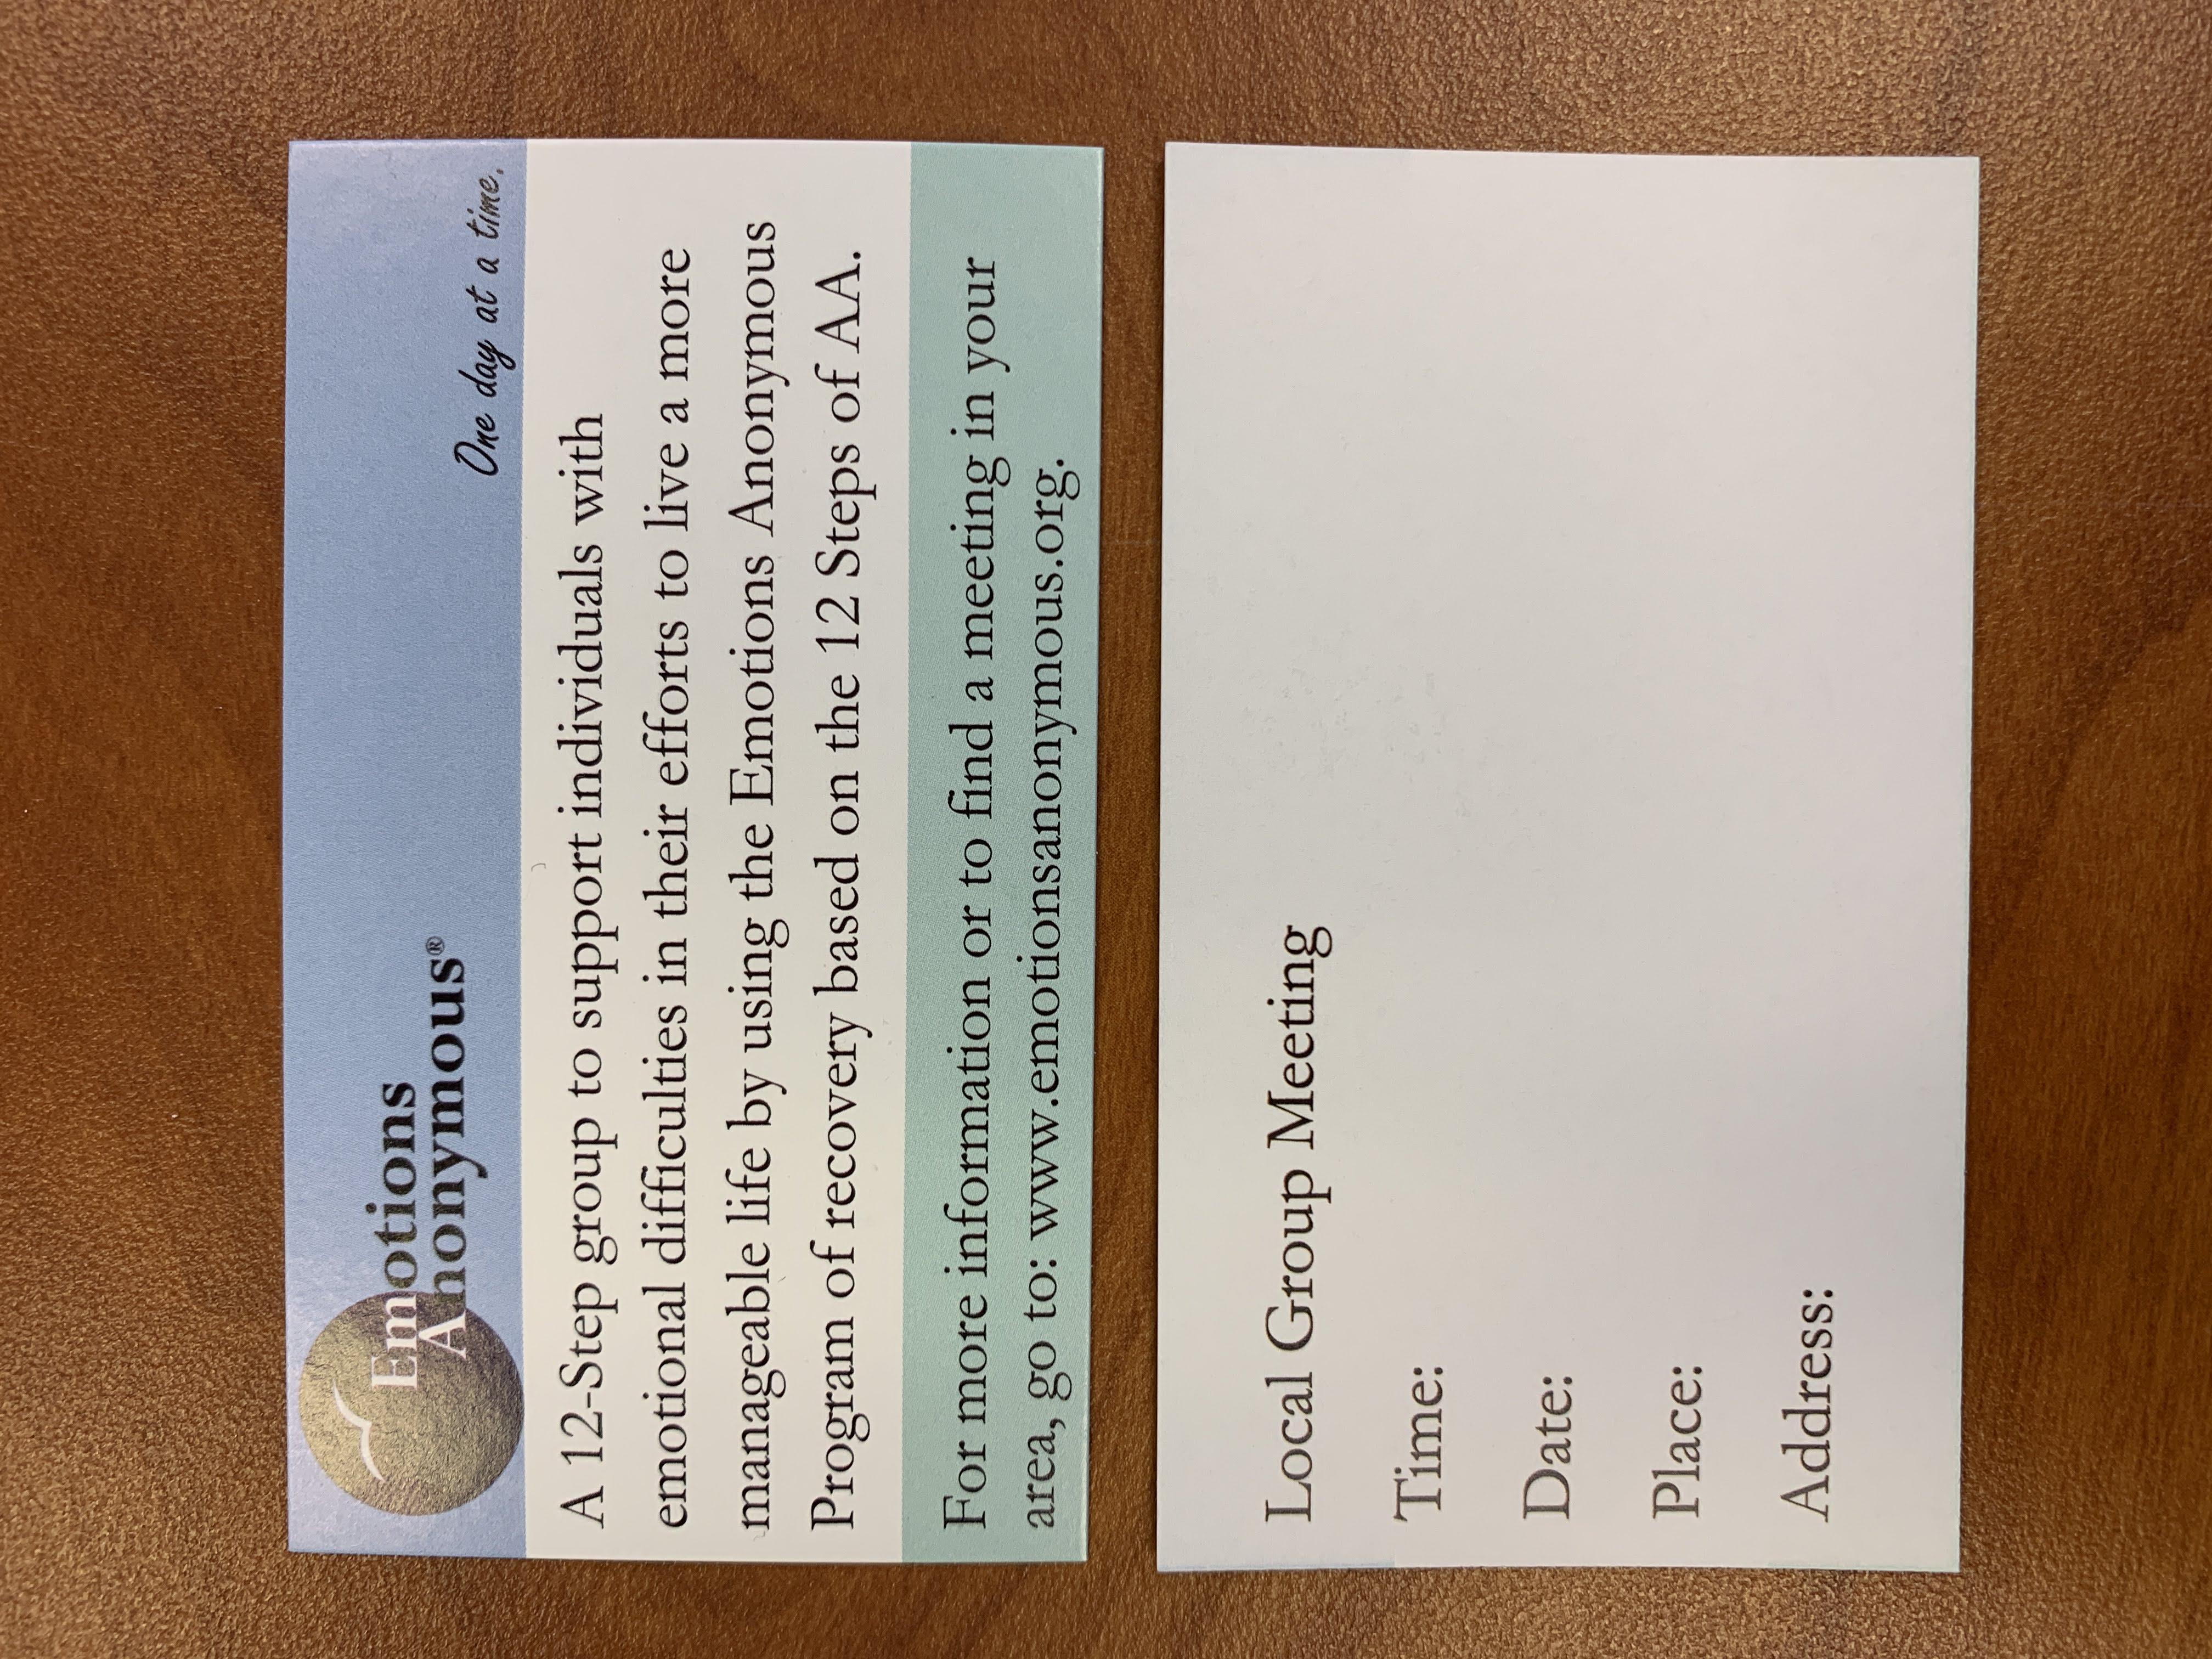 Share Your Meeting Card